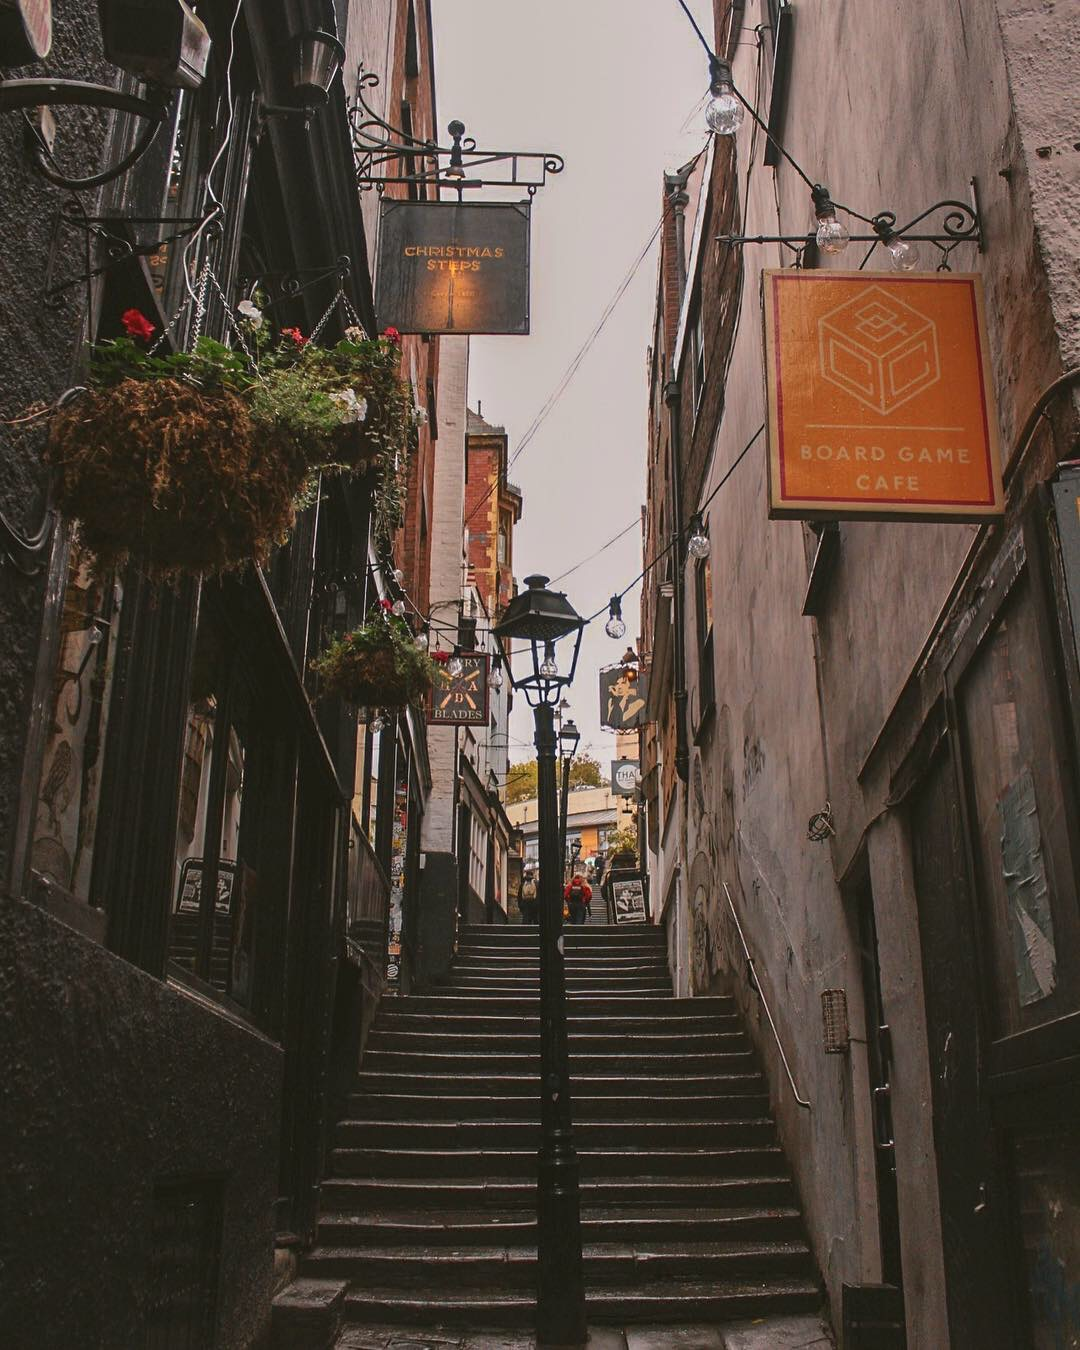 Visit Bristol In One Day Trip - Explore Bristol's harbourside, famous landmarks, and beautiful countryside for an immersive taste of history, world exploration, and engineering! Walk up Christmas Steps - one of the oldest streets in Bristol!